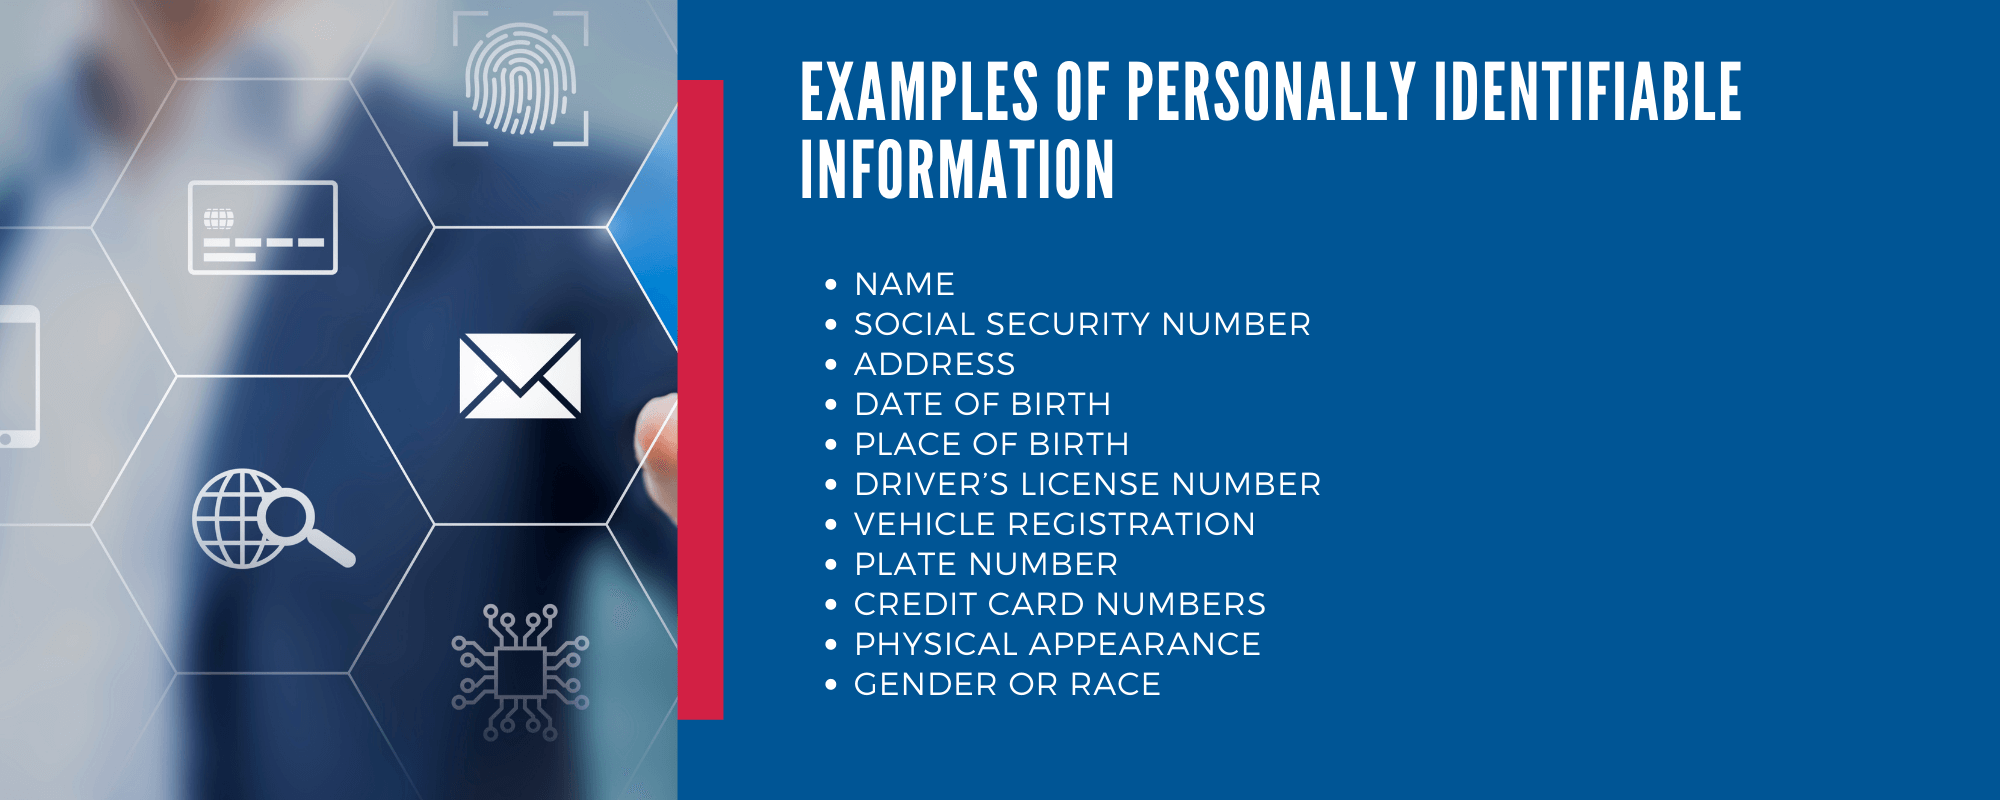 Cyber Liability - What is Personally Identifiable information? Name, ss number, DOB, Place of birth, vehicle registration, plate number, credit card numbers